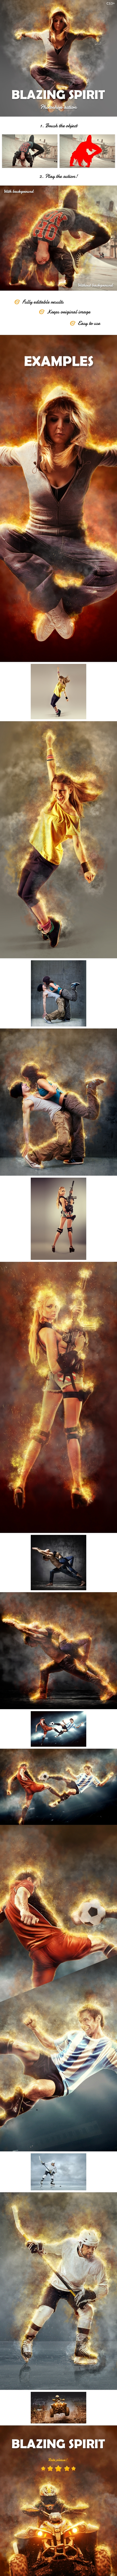 Blazing Spirit - Fire Photoshop Action v1.01 - Photo Effects Actions